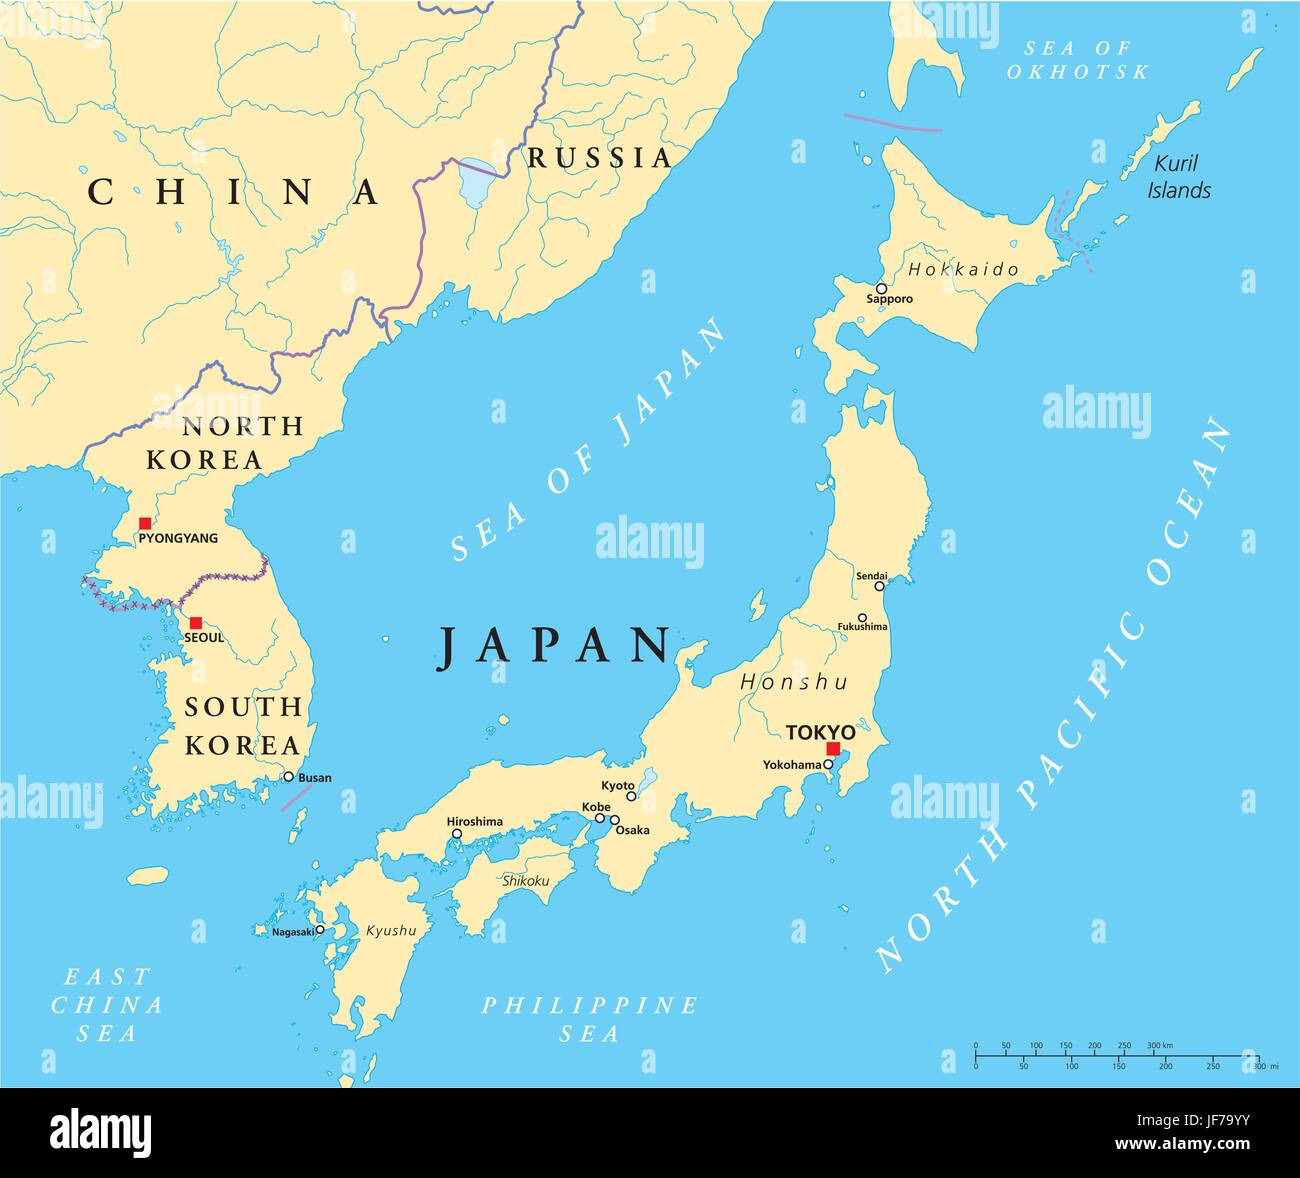 japan, korea, north korea, map, atlas, map of the world, tokyo, illustration, Stock Vector